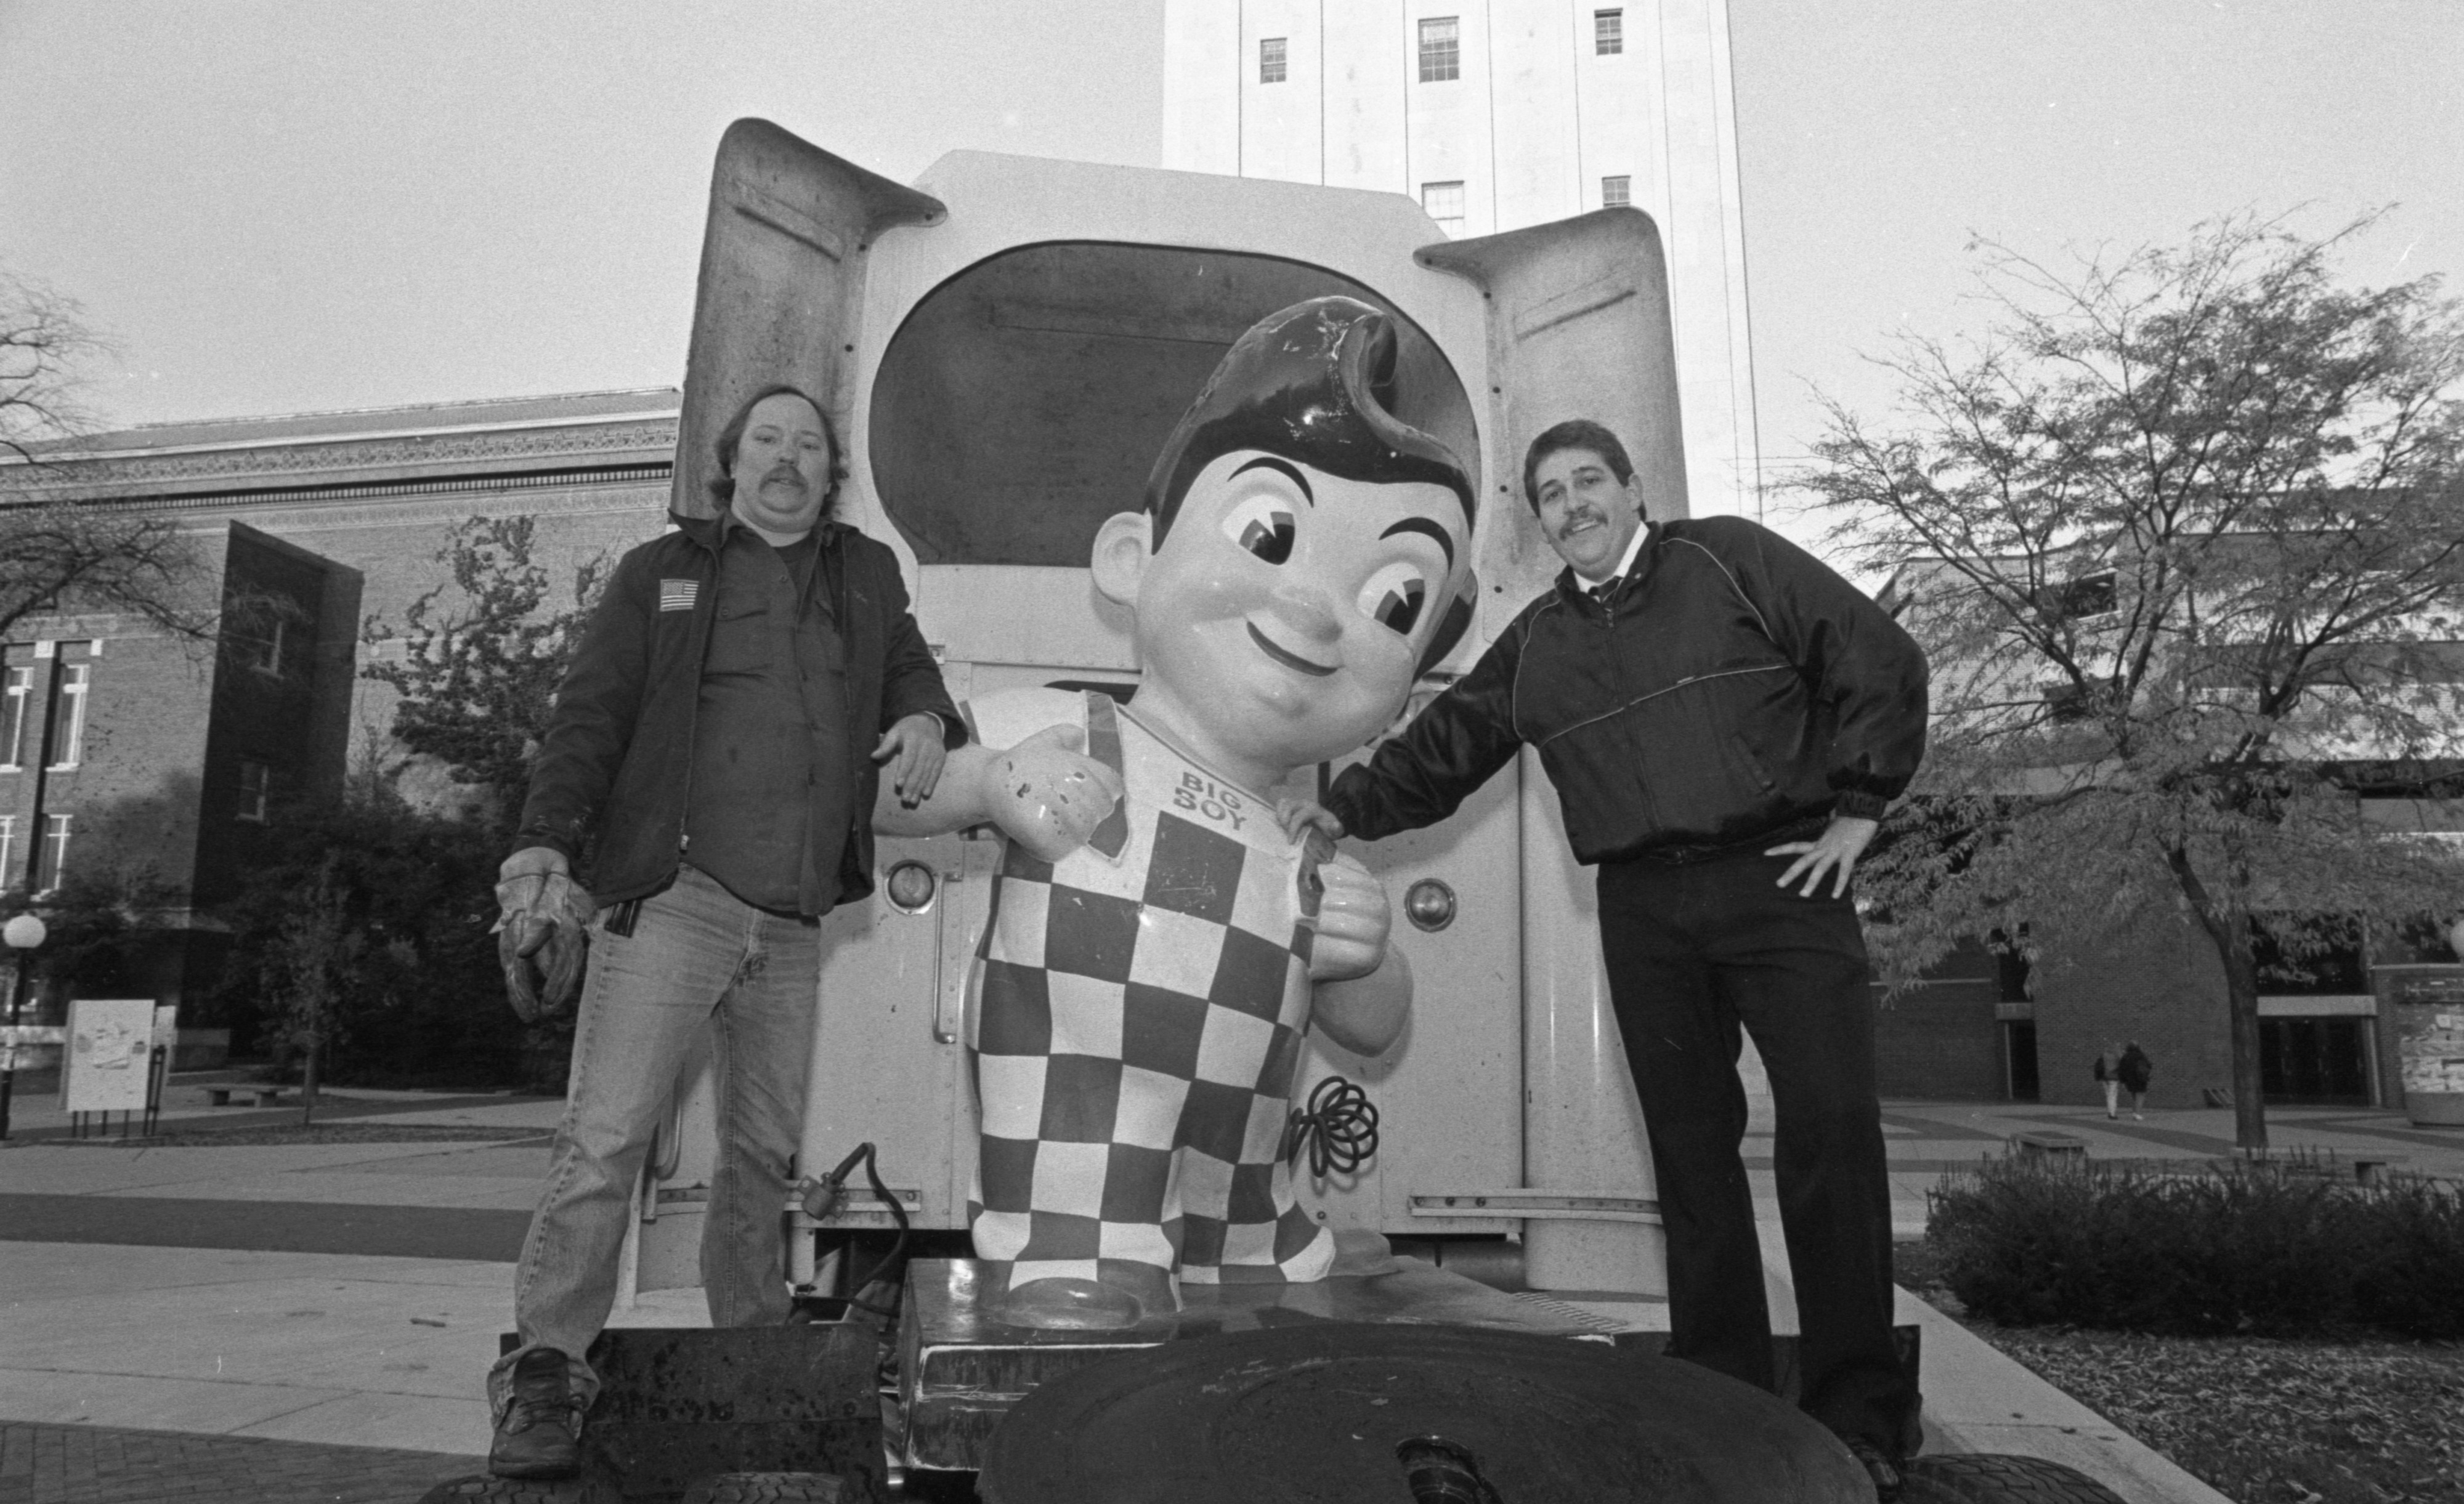 Stolen Big Boy Statue Recovered From The University Of Michigan Campus, October 1991 image